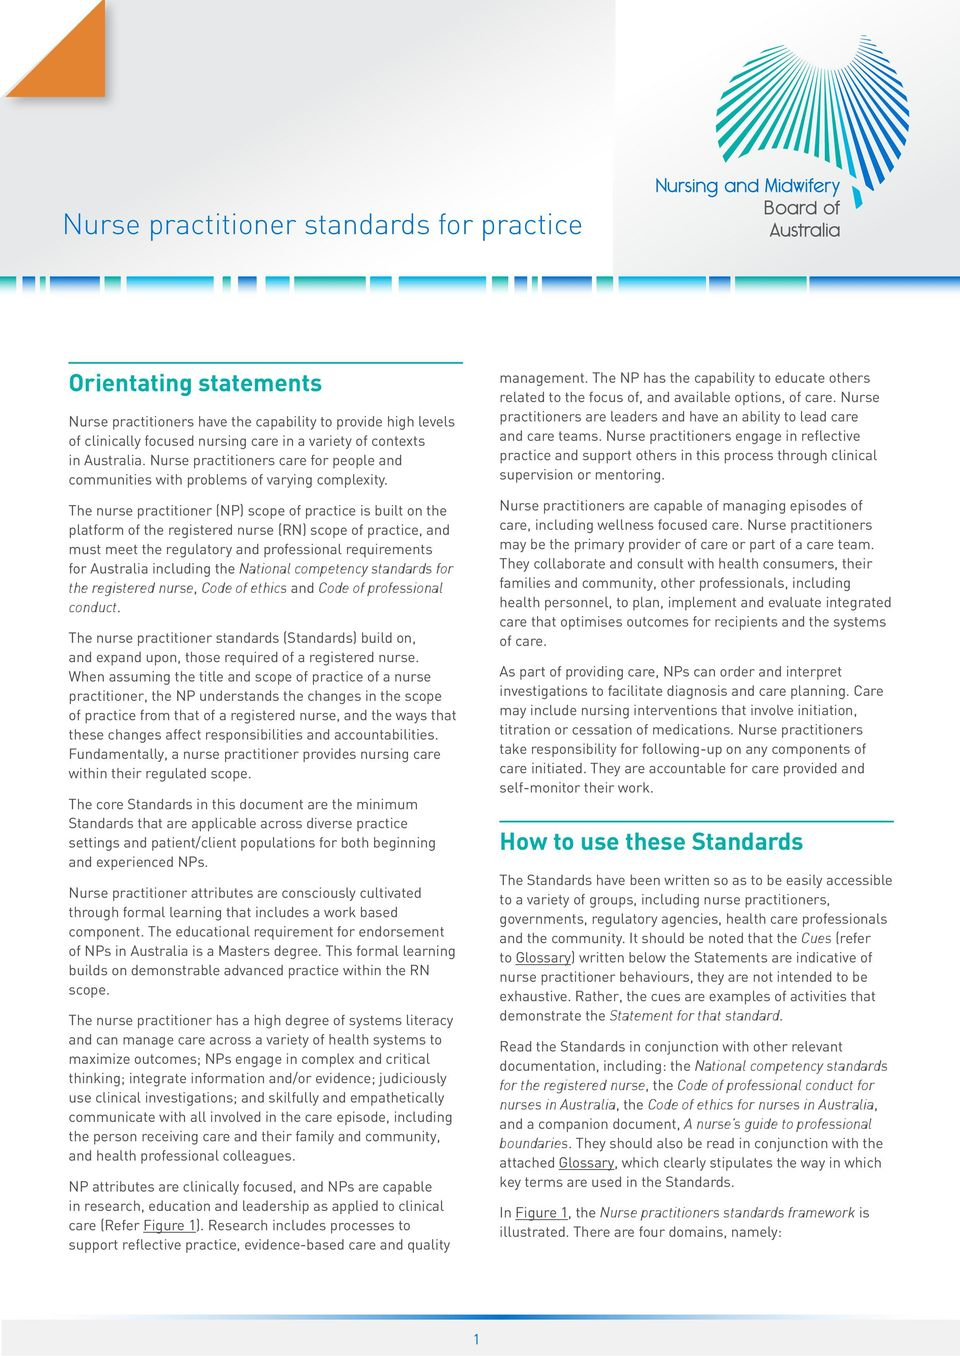 The nurse practitioner (NP) scope of is built on the platform of the registered nurse (RN) scope of, and must meet the regulatory and professional requirements for Australia including the National